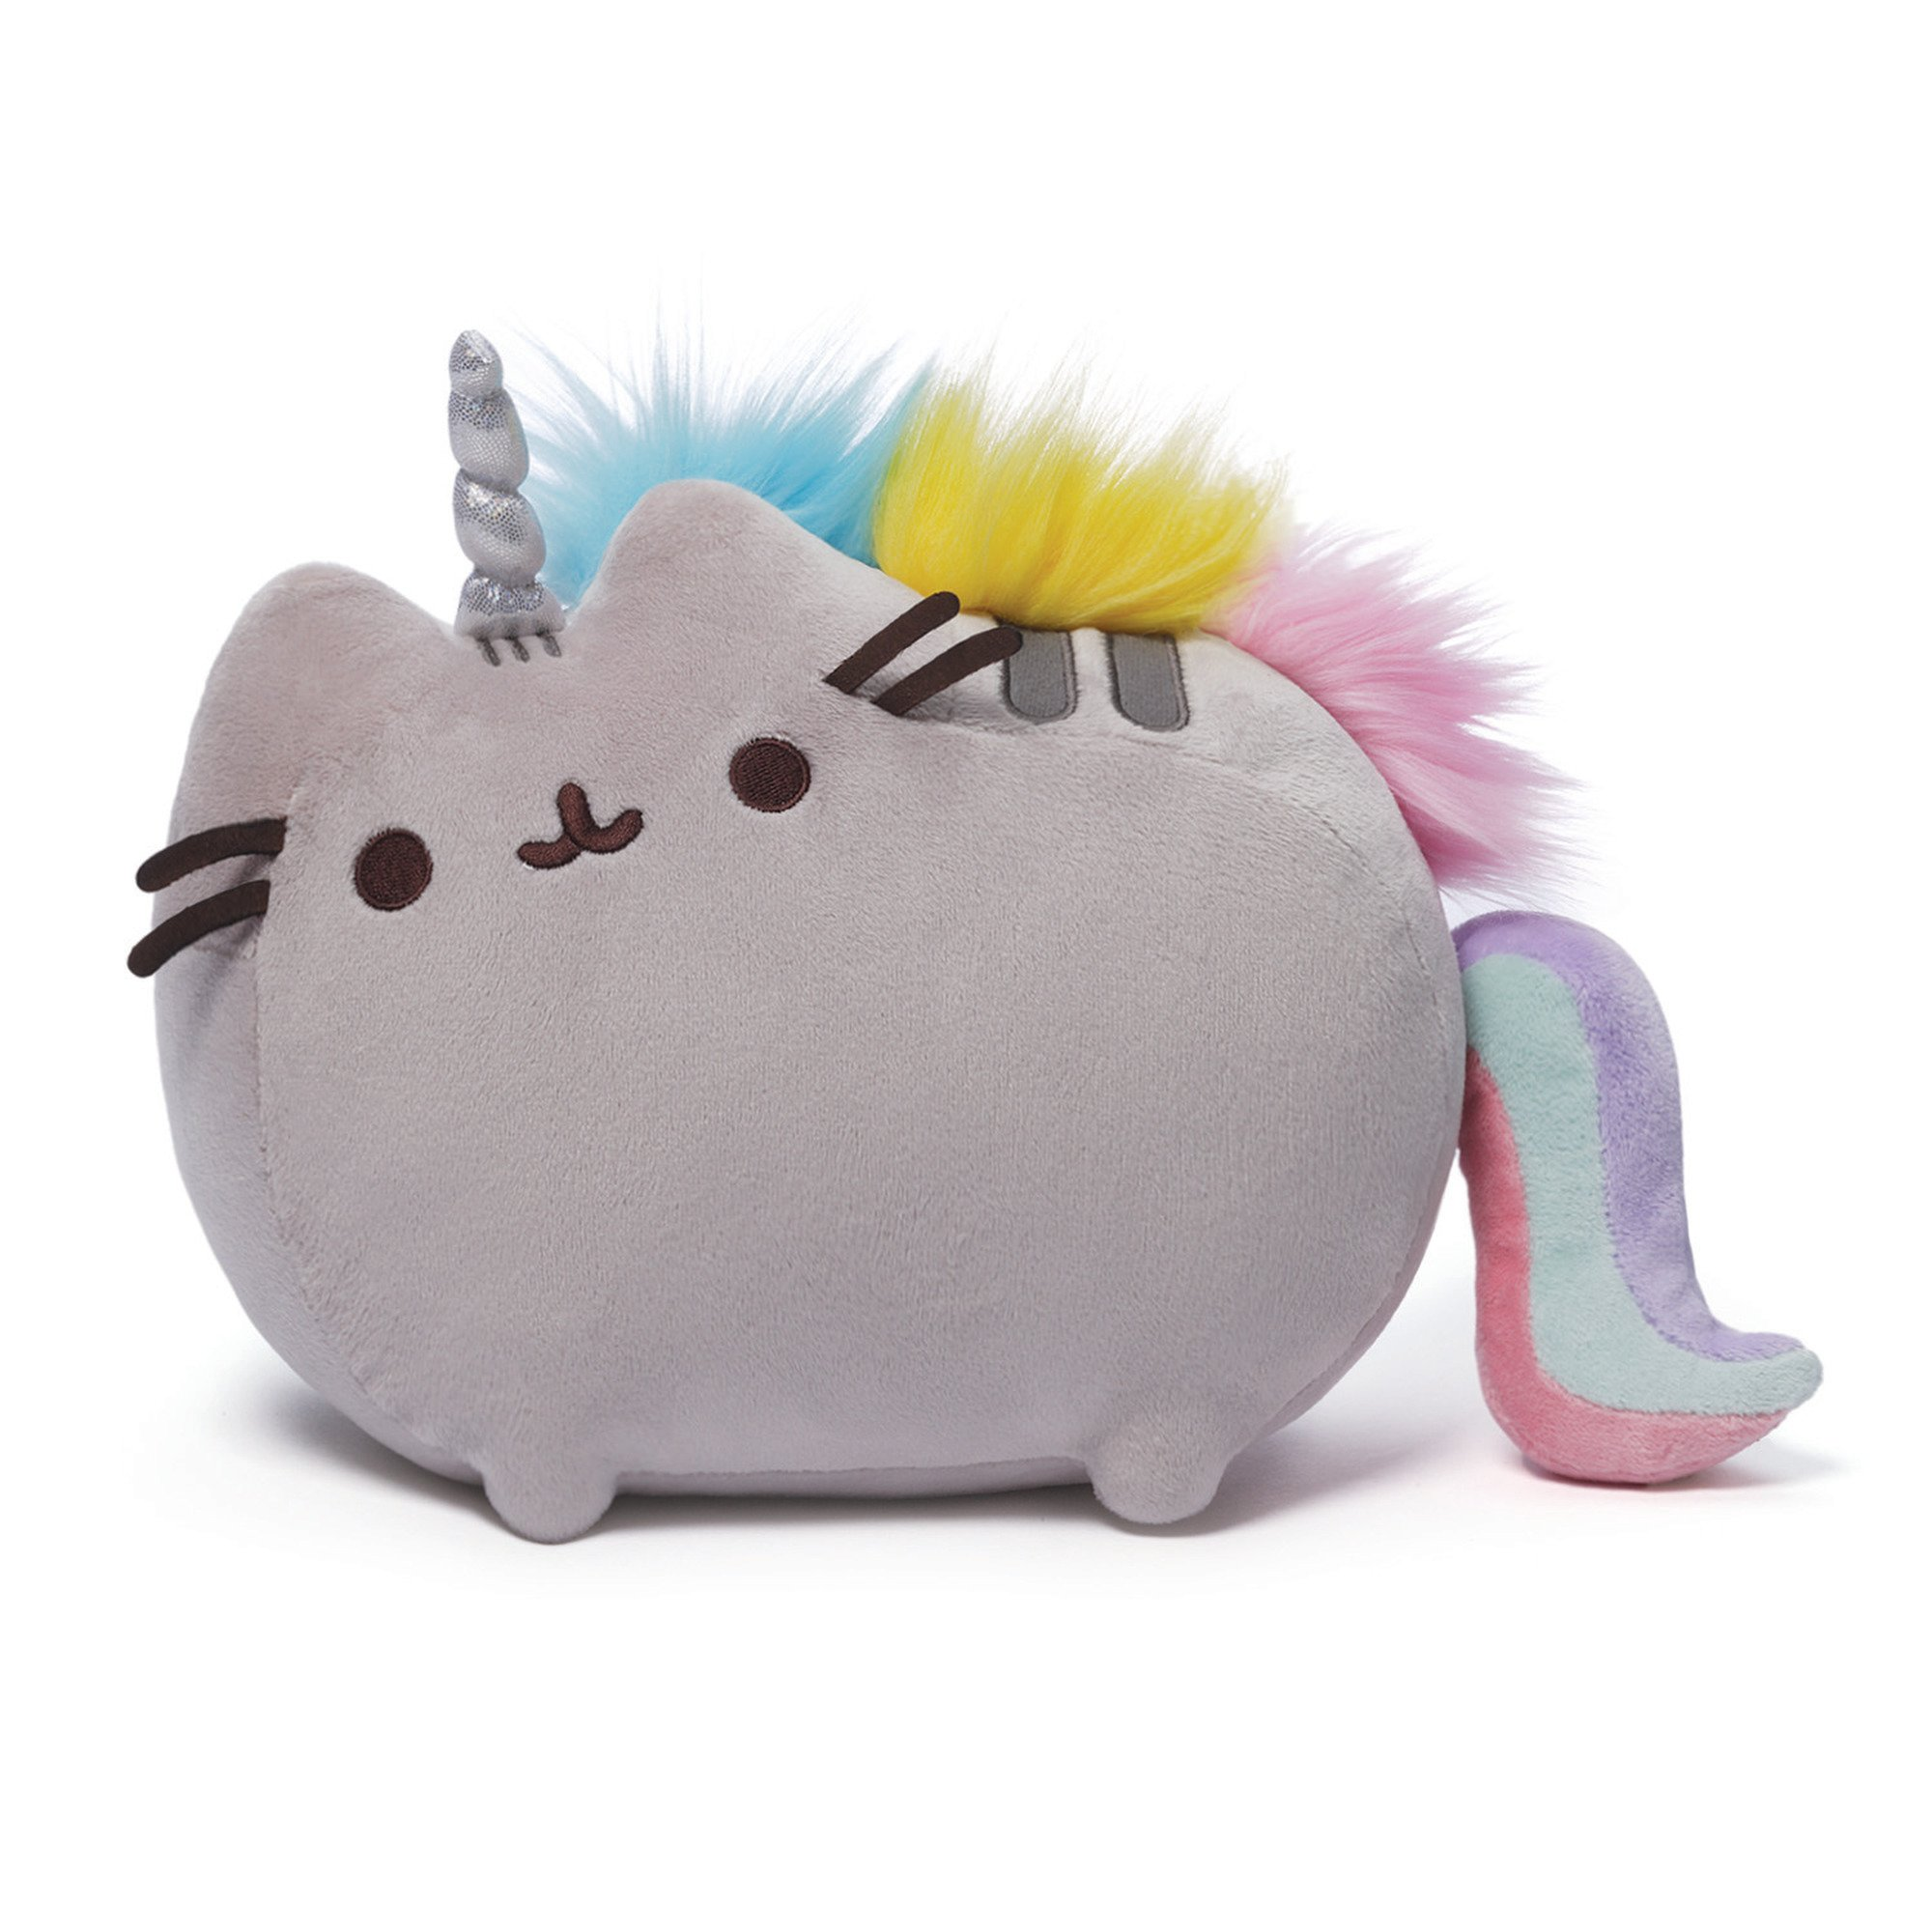 GUND Pusheenicorn Unicorn Stuffed Animal Plush, 13''